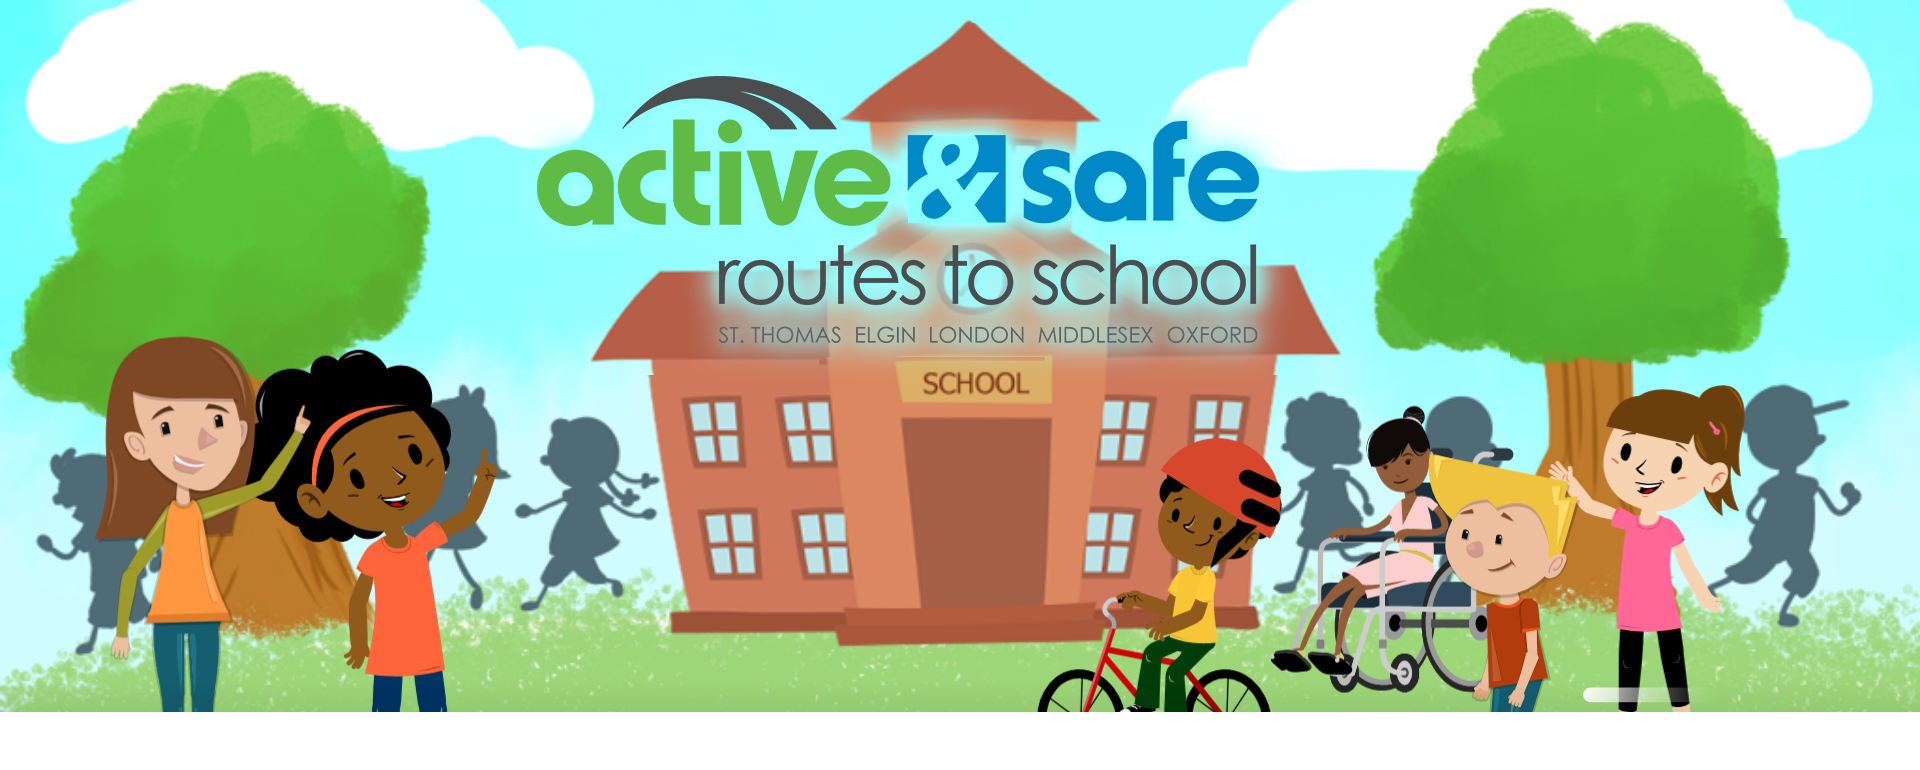 Climate Change & Active School Travel: Go Green Travel Clean Campaign